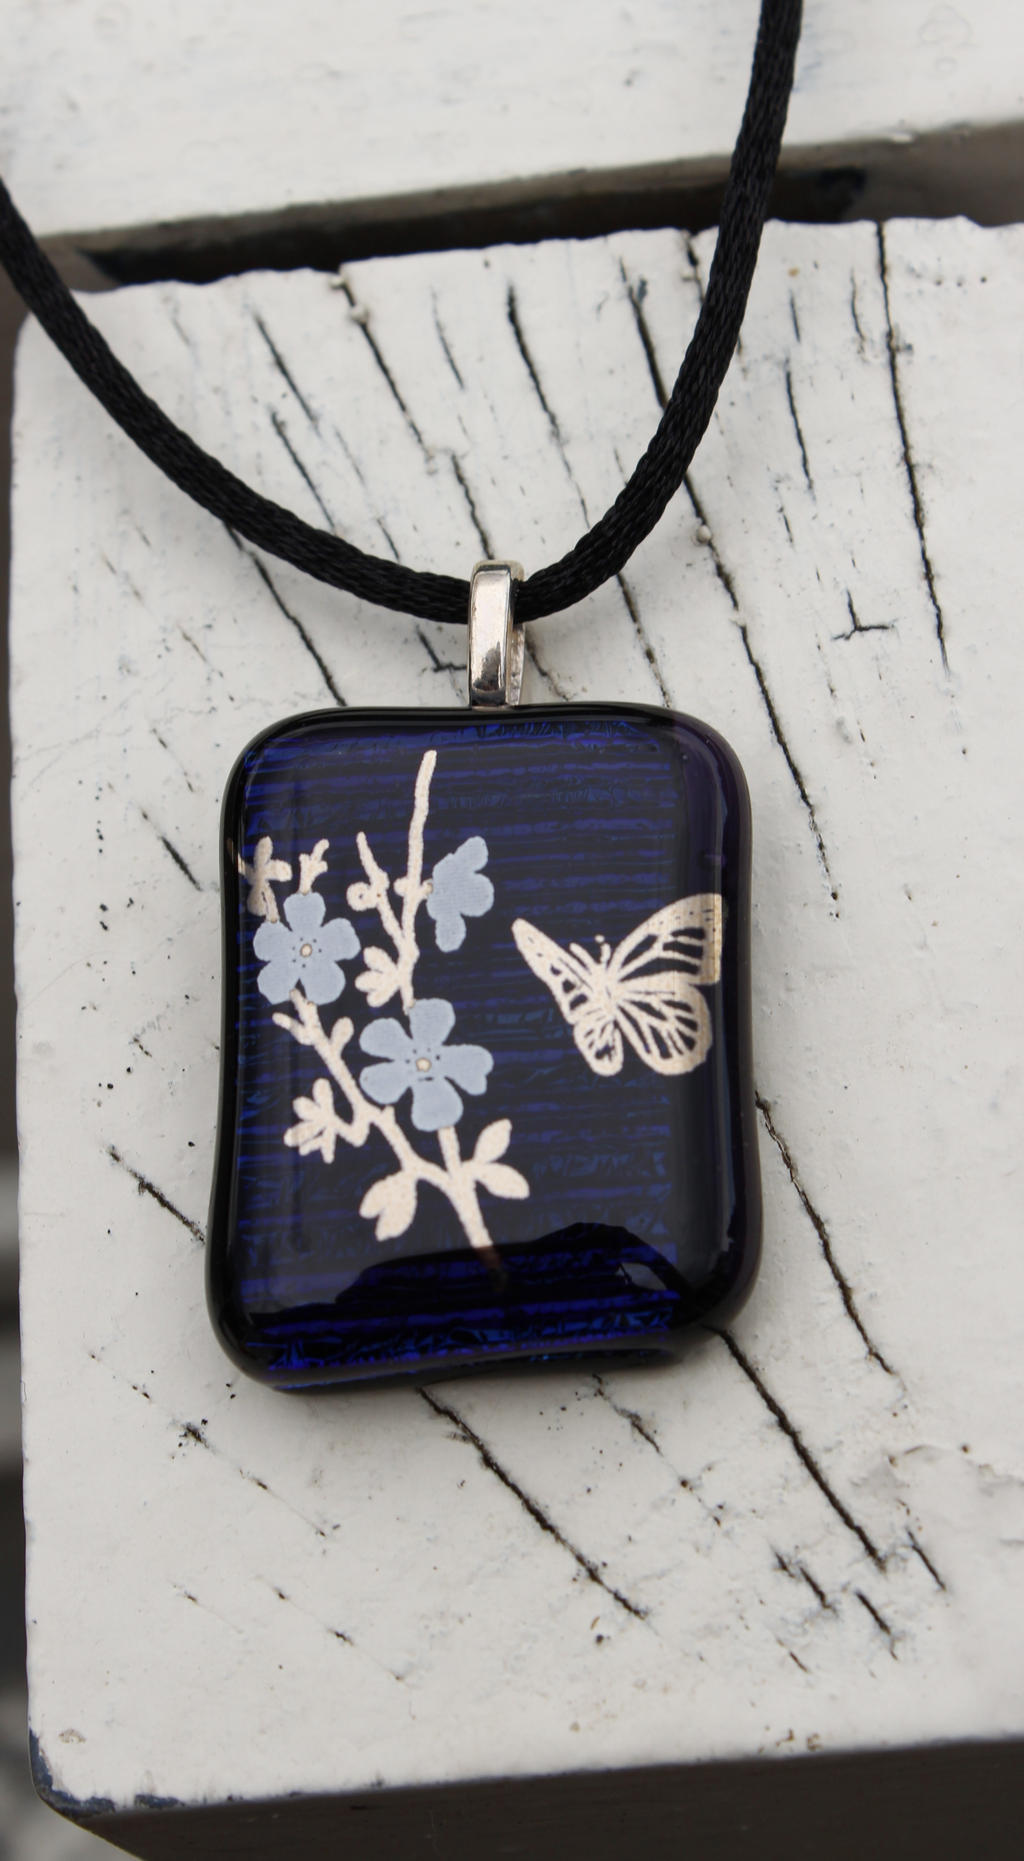 Butterfly and Flowers - Dichroic pendant by Dimolicious